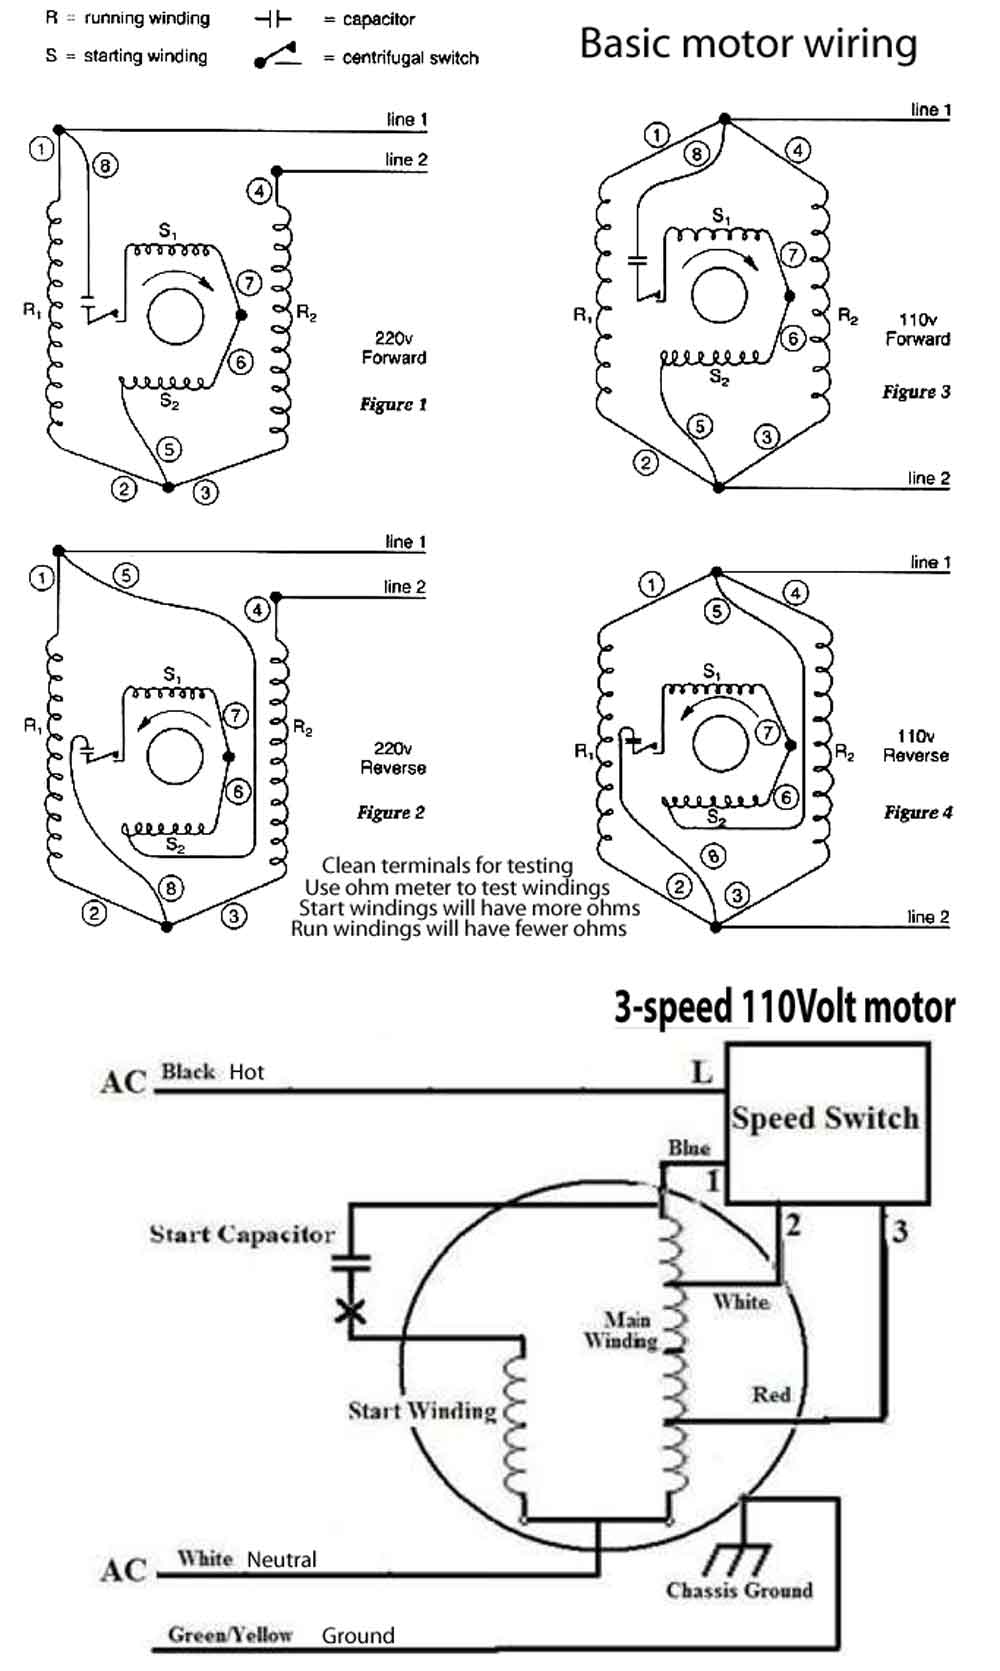 Dayton Fan Motor Wiring Diagram - Wiring Diagram All on